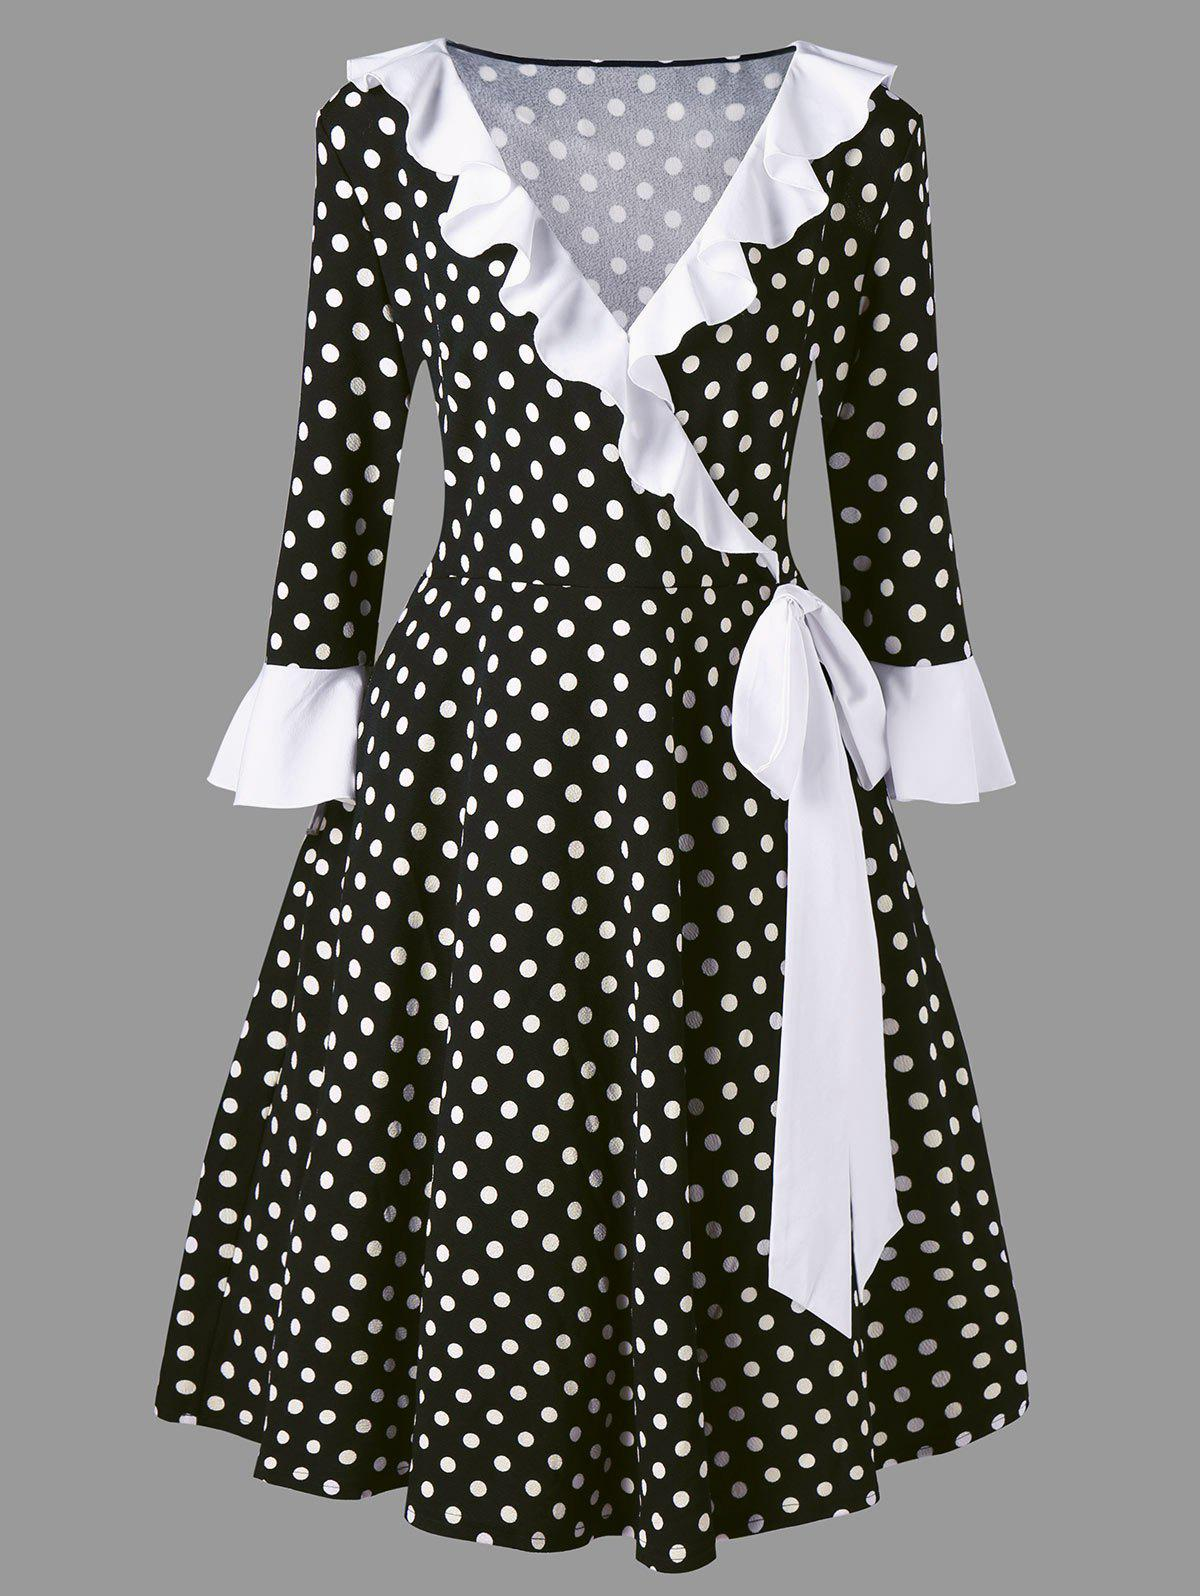 Plus Size Vintage Flounce Bowknot Polka Dot DressWOMEN<br><br>Size: XL; Color: WHITE AND BLACK; Style: Vintage; Material: Polyester,Spandex; Silhouette: A-Line; Dresses Length: Mid-Calf; Neckline: V-Neck; Sleeve Type: Flare Sleeve; Sleeve Length: 3/4 Length Sleeves; Embellishment: Bowknot,Flounce; Pattern Type: Polka Dot; With Belt: No; Season: Fall,Spring; Weight: 0.4600kg; Package Contents: 1 x Dress;